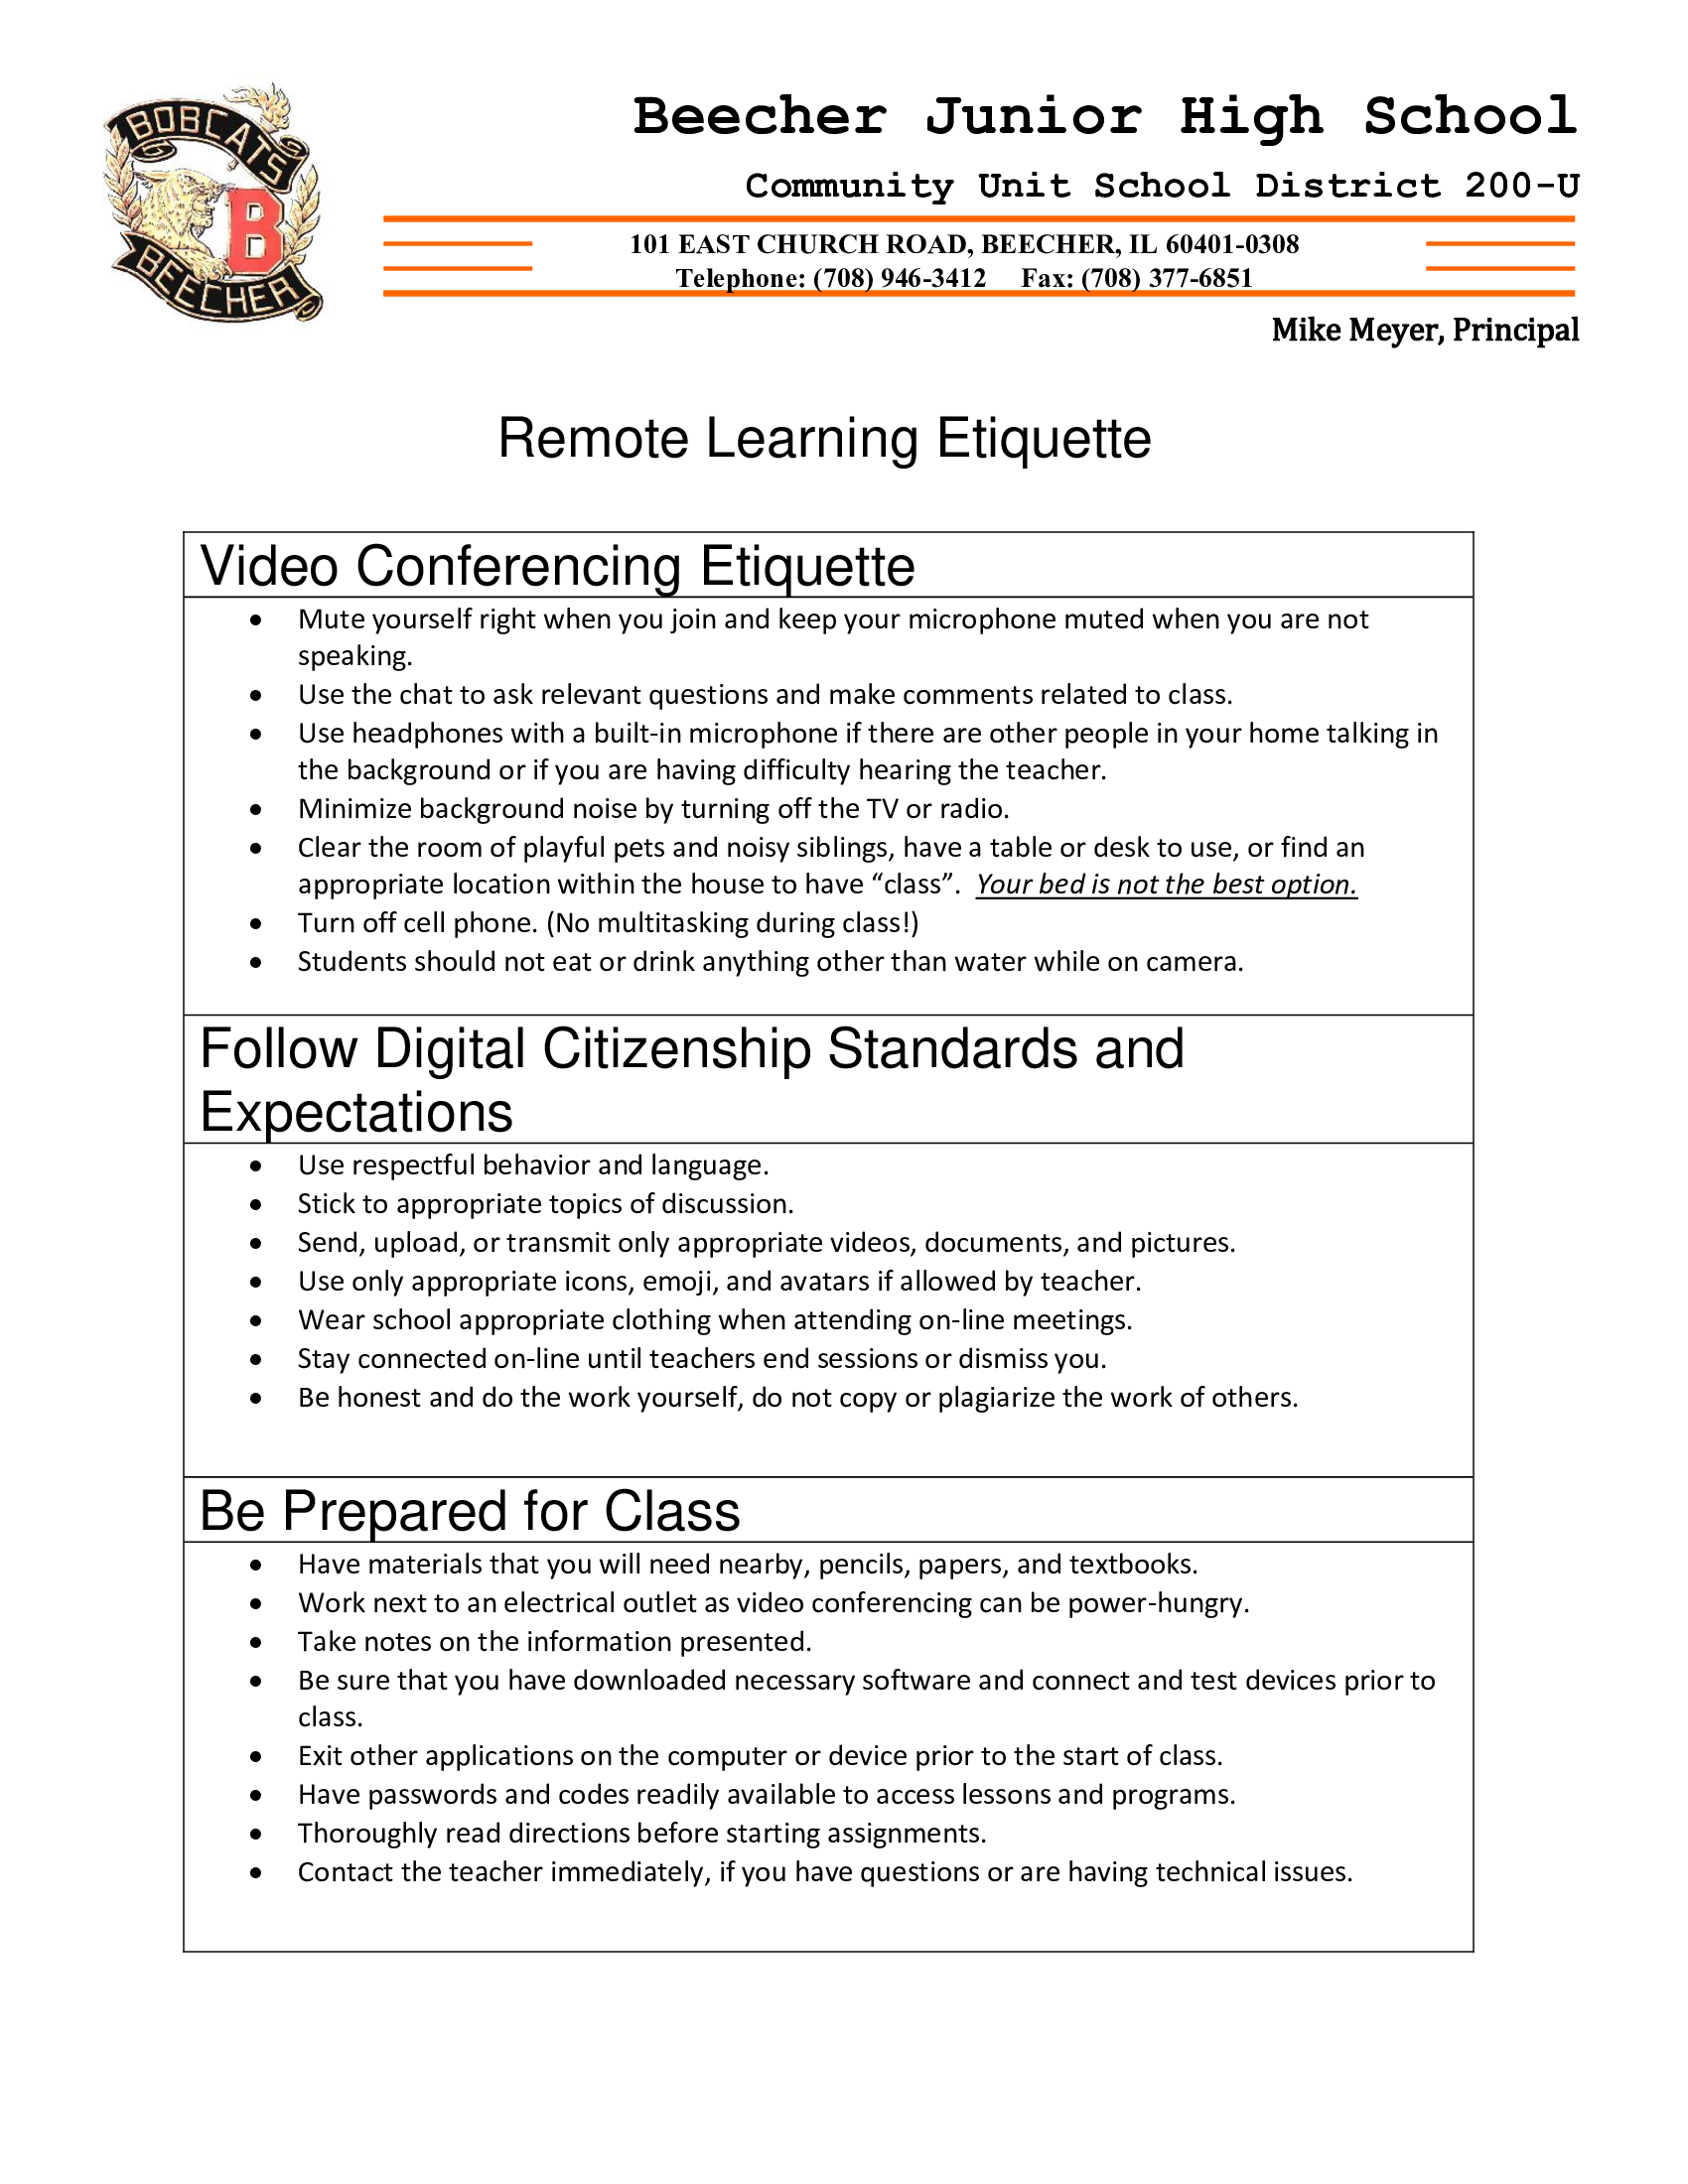 BJHS Remote Learning Etiquette